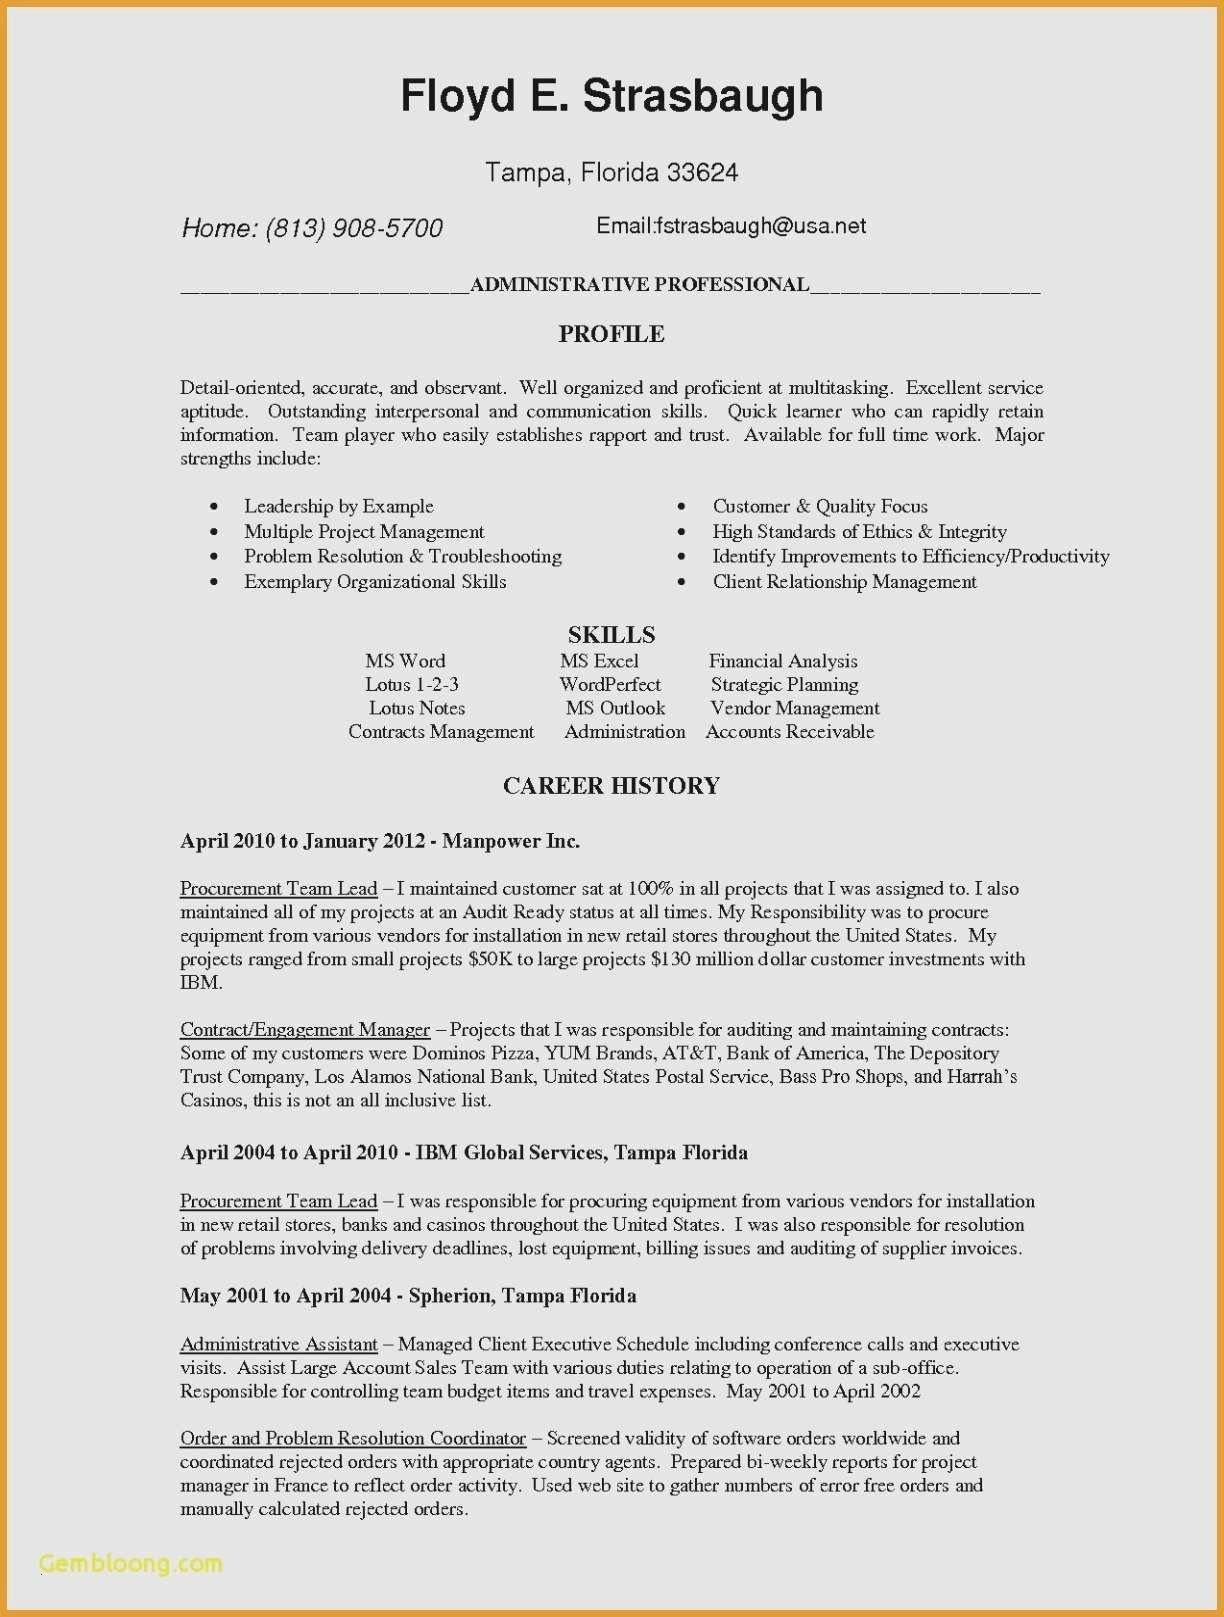 Ncci Com Worksheets  Briefencounters Within Ncci Com Worksheets